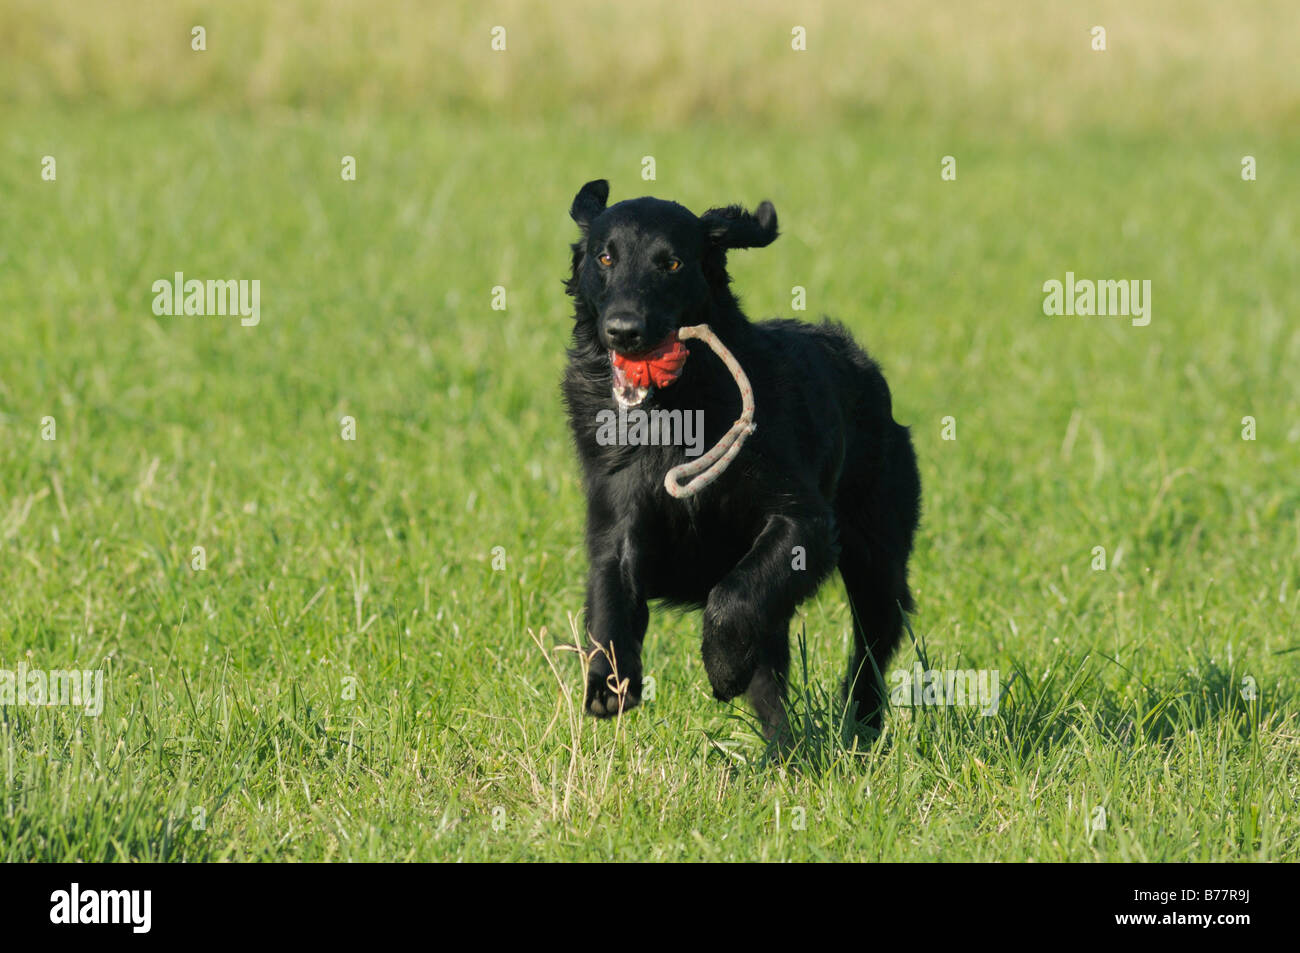 Black dog running with a red ball on a string - Stock Image